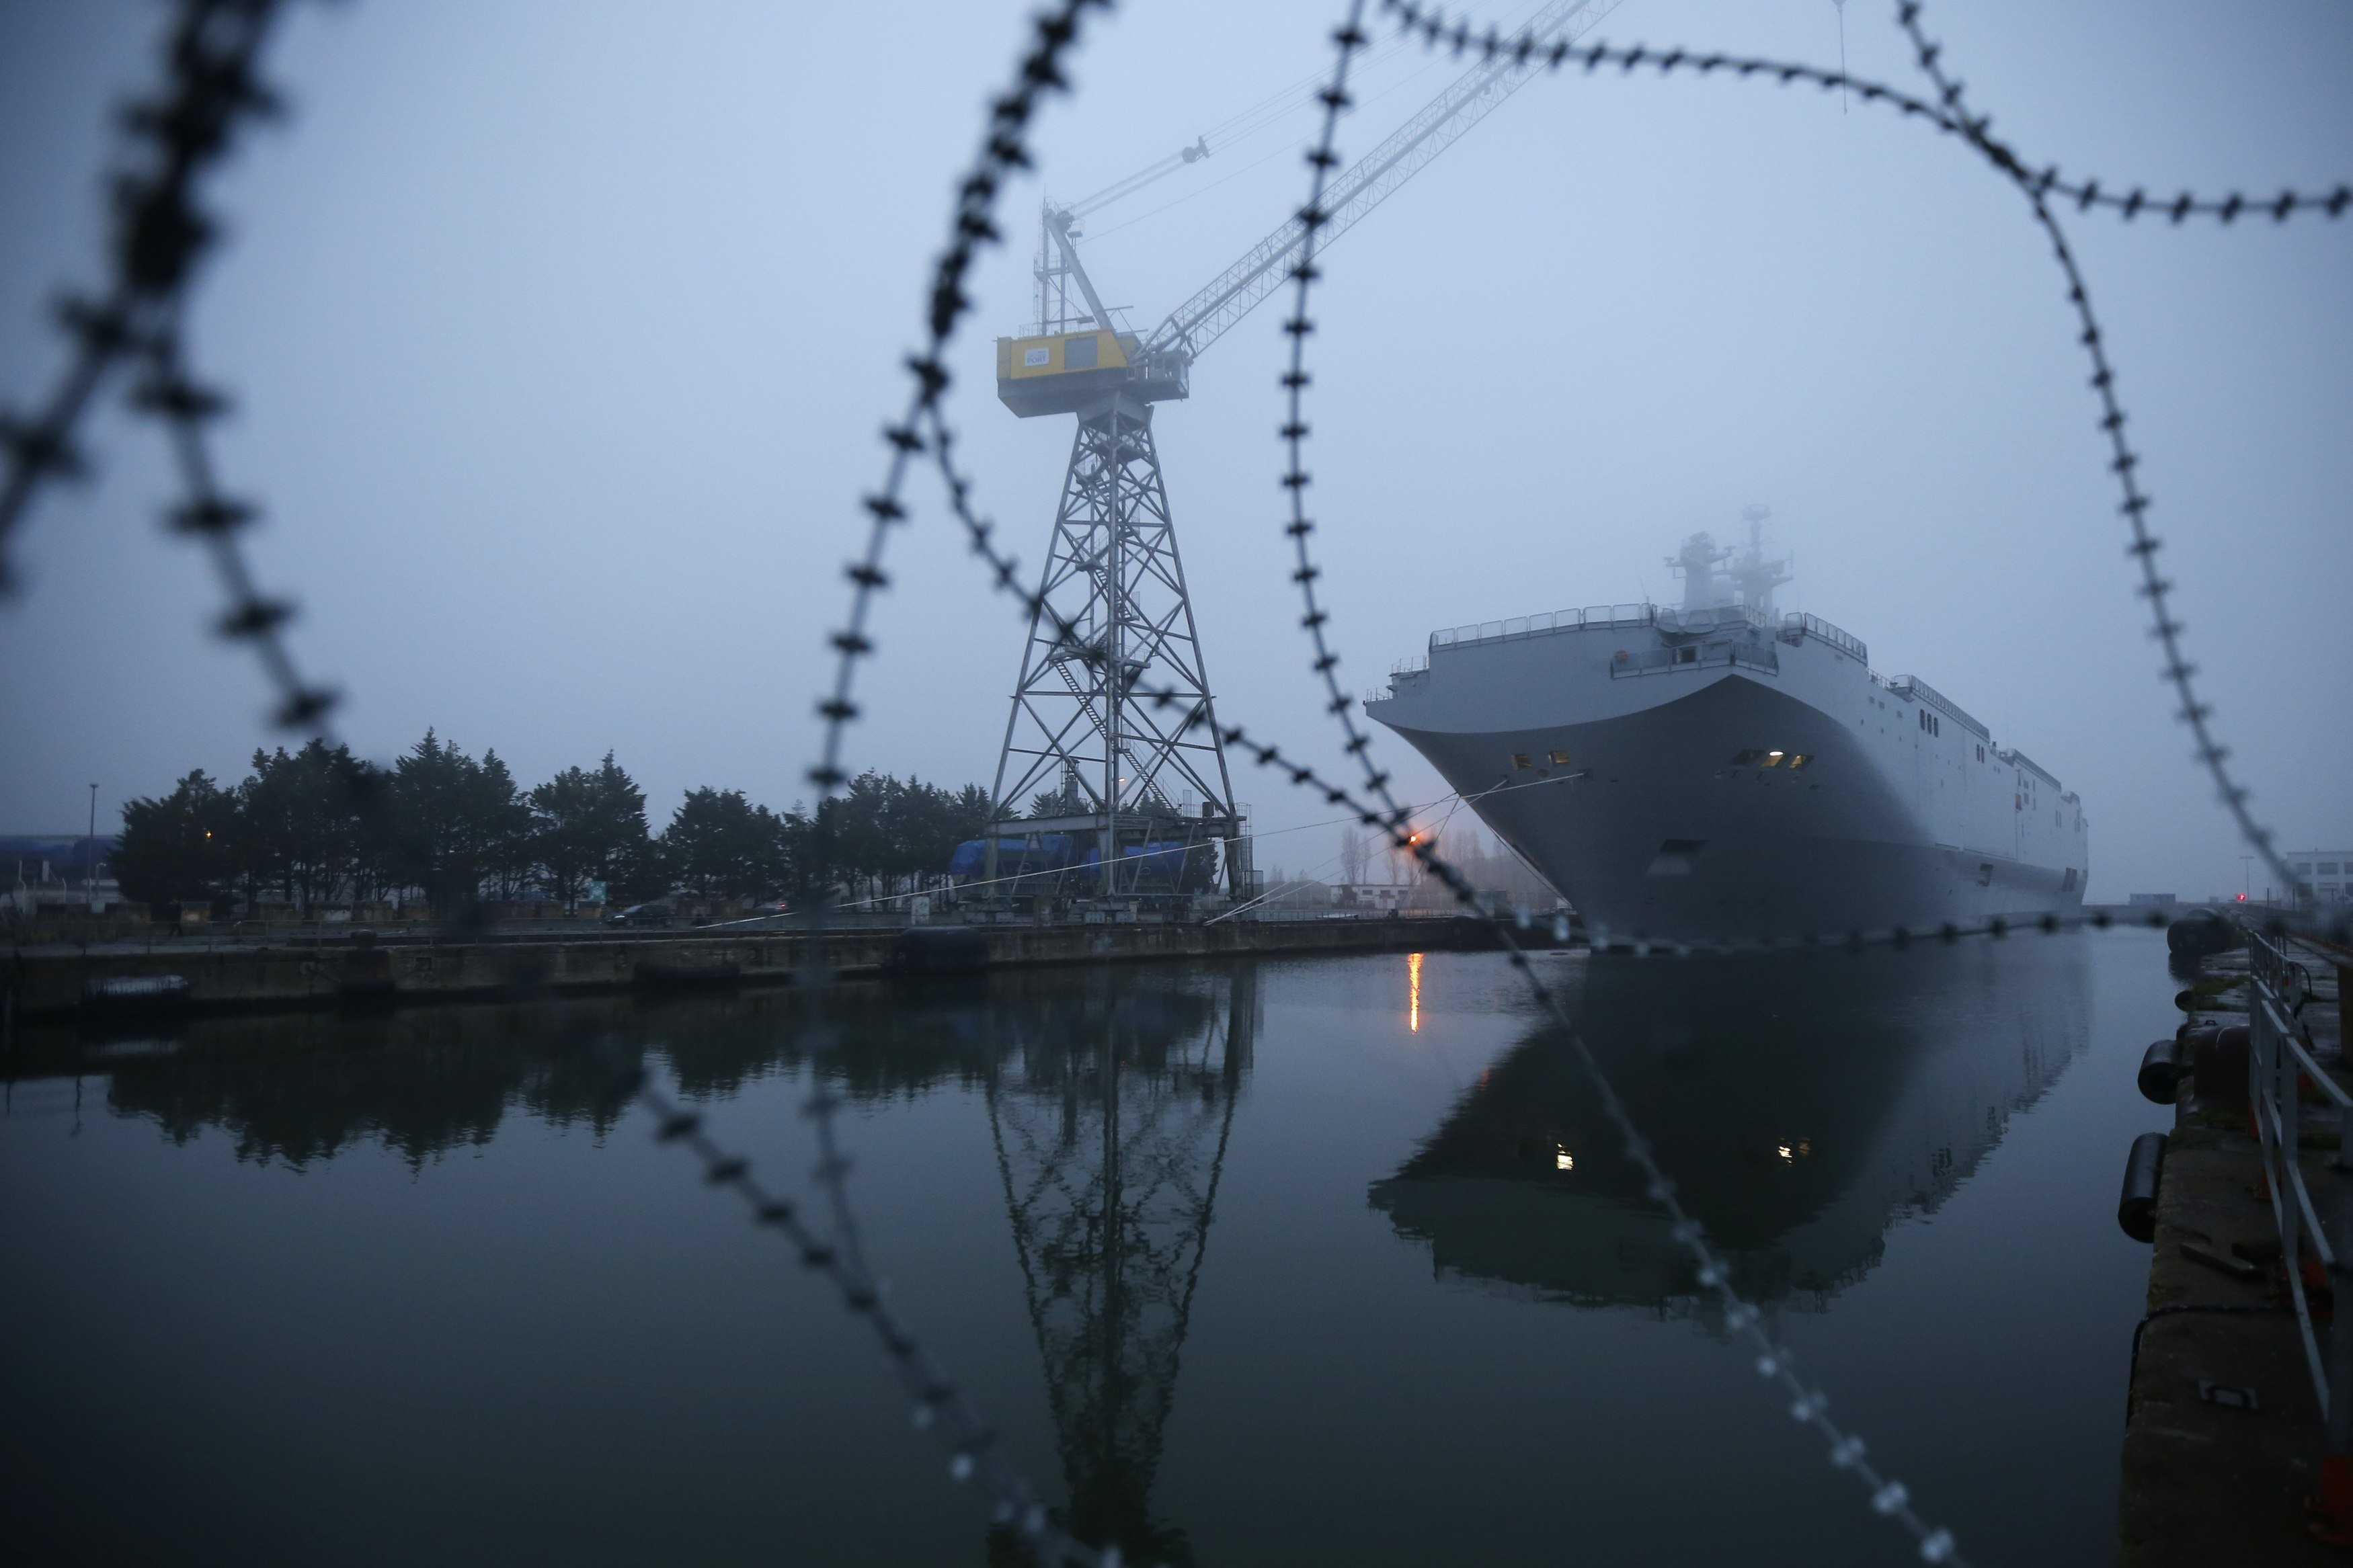 The Mistral-class helicopter carrier Vladivostok is seen at the STX Les Chantiers de l'Atlantique shipyard site in Saint-Nazaire, western France, November 25, 2014. France suspended indefinitely on Tuesday delivery of the first of two Mistral helicopter carrier warships to Russia, citing conflict in eastern Ukraine where the West accuses Moscow of fomenting separatism. REUTERS/Stephane Mahe (FRANCE - Tags: BUSINESS MILITARY POLITICS MARITIME TPX IMAGES OF THE DAY)